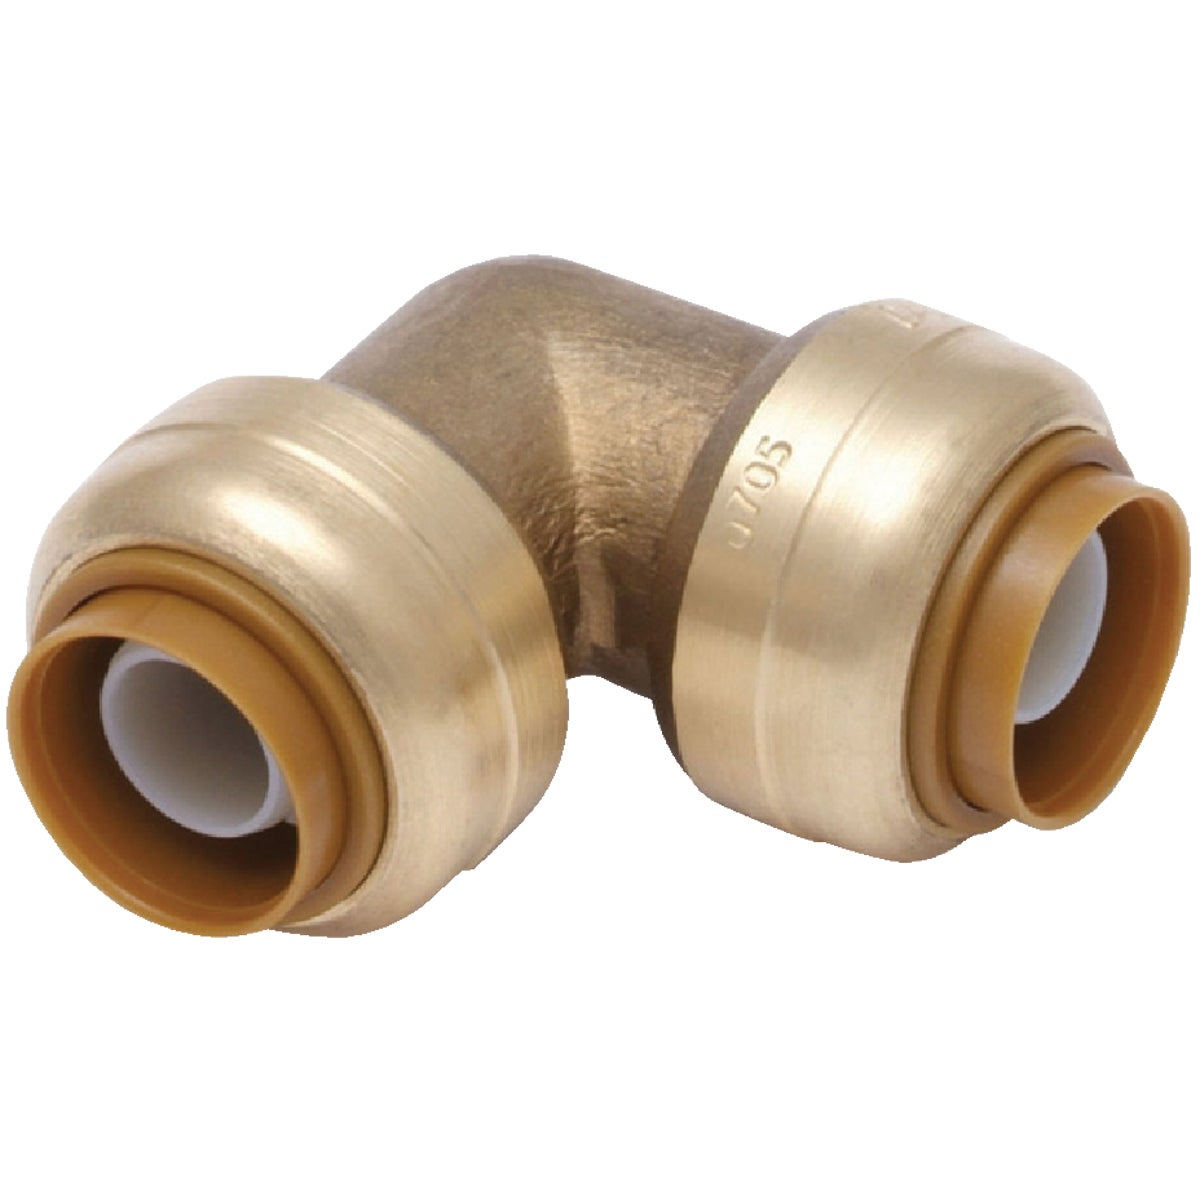 "3/4"" PUSH ELBOW - U256LFA by Cash Acme"